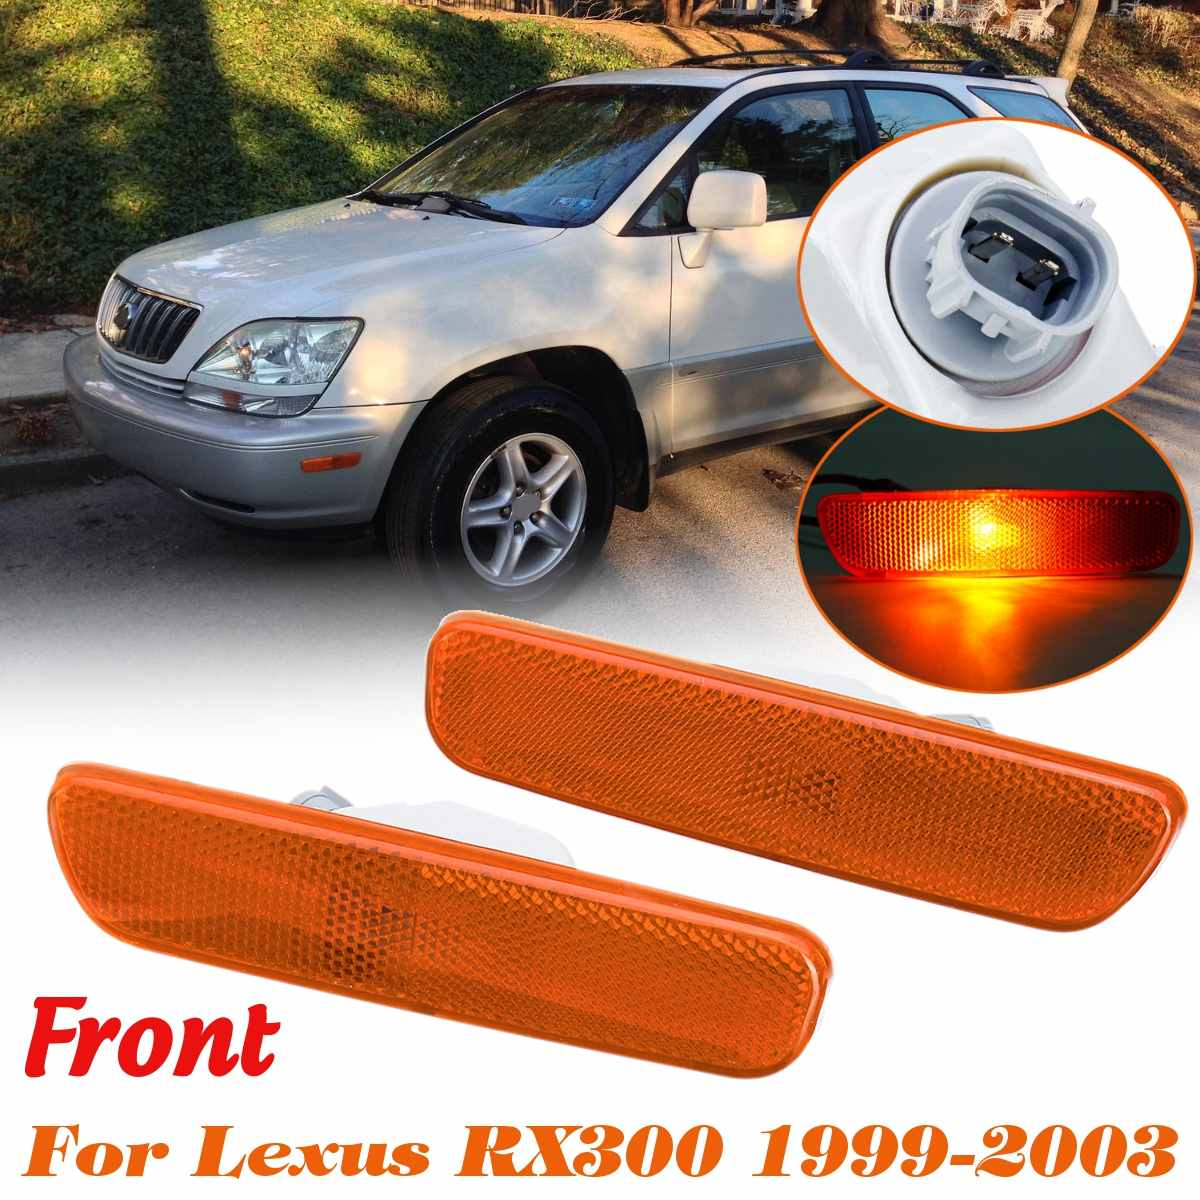 #81740-48010 For <font><b>Lexus</b></font> <font><b>RX300</b></font> 1999 2000 2001 2002 2003 Left/Right Front Bumper Side Marker Light <font><b>Lamp</b></font> image